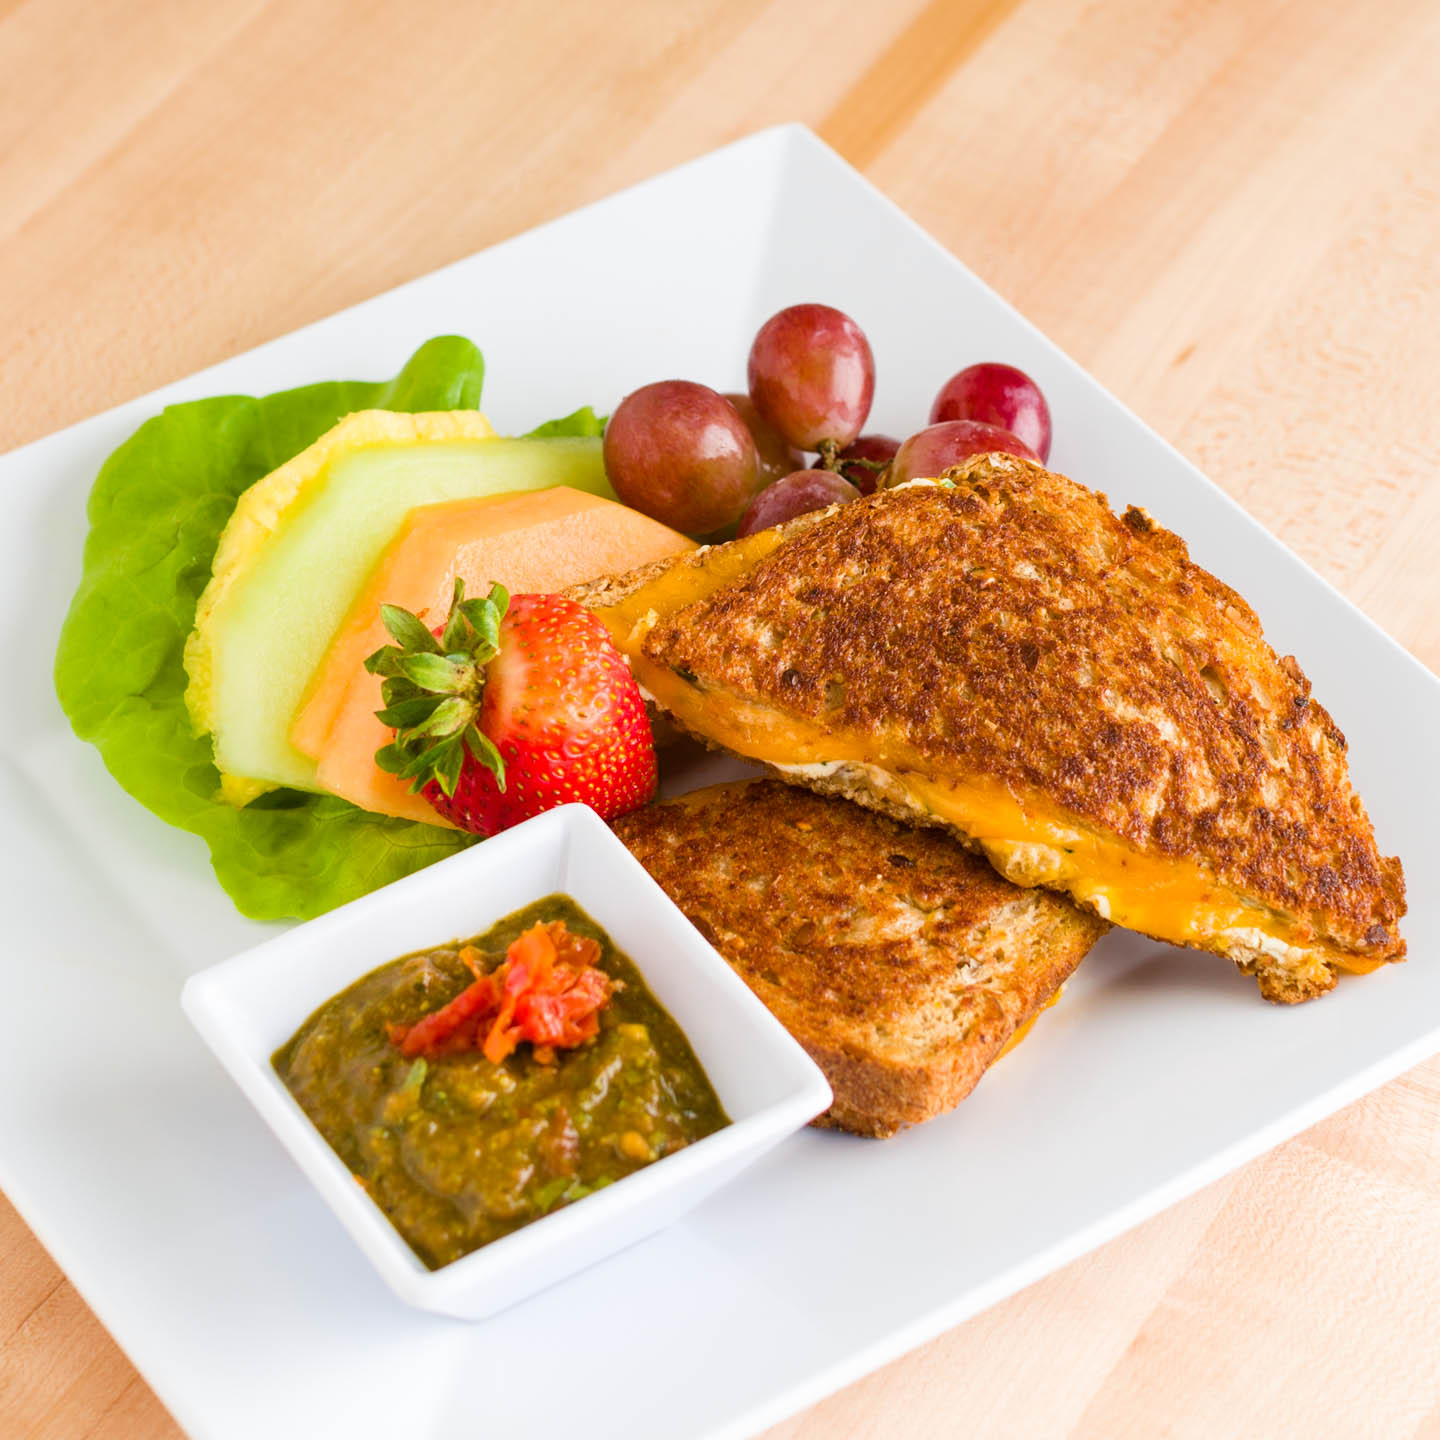 Grilled cheese with Neufchatel cheese